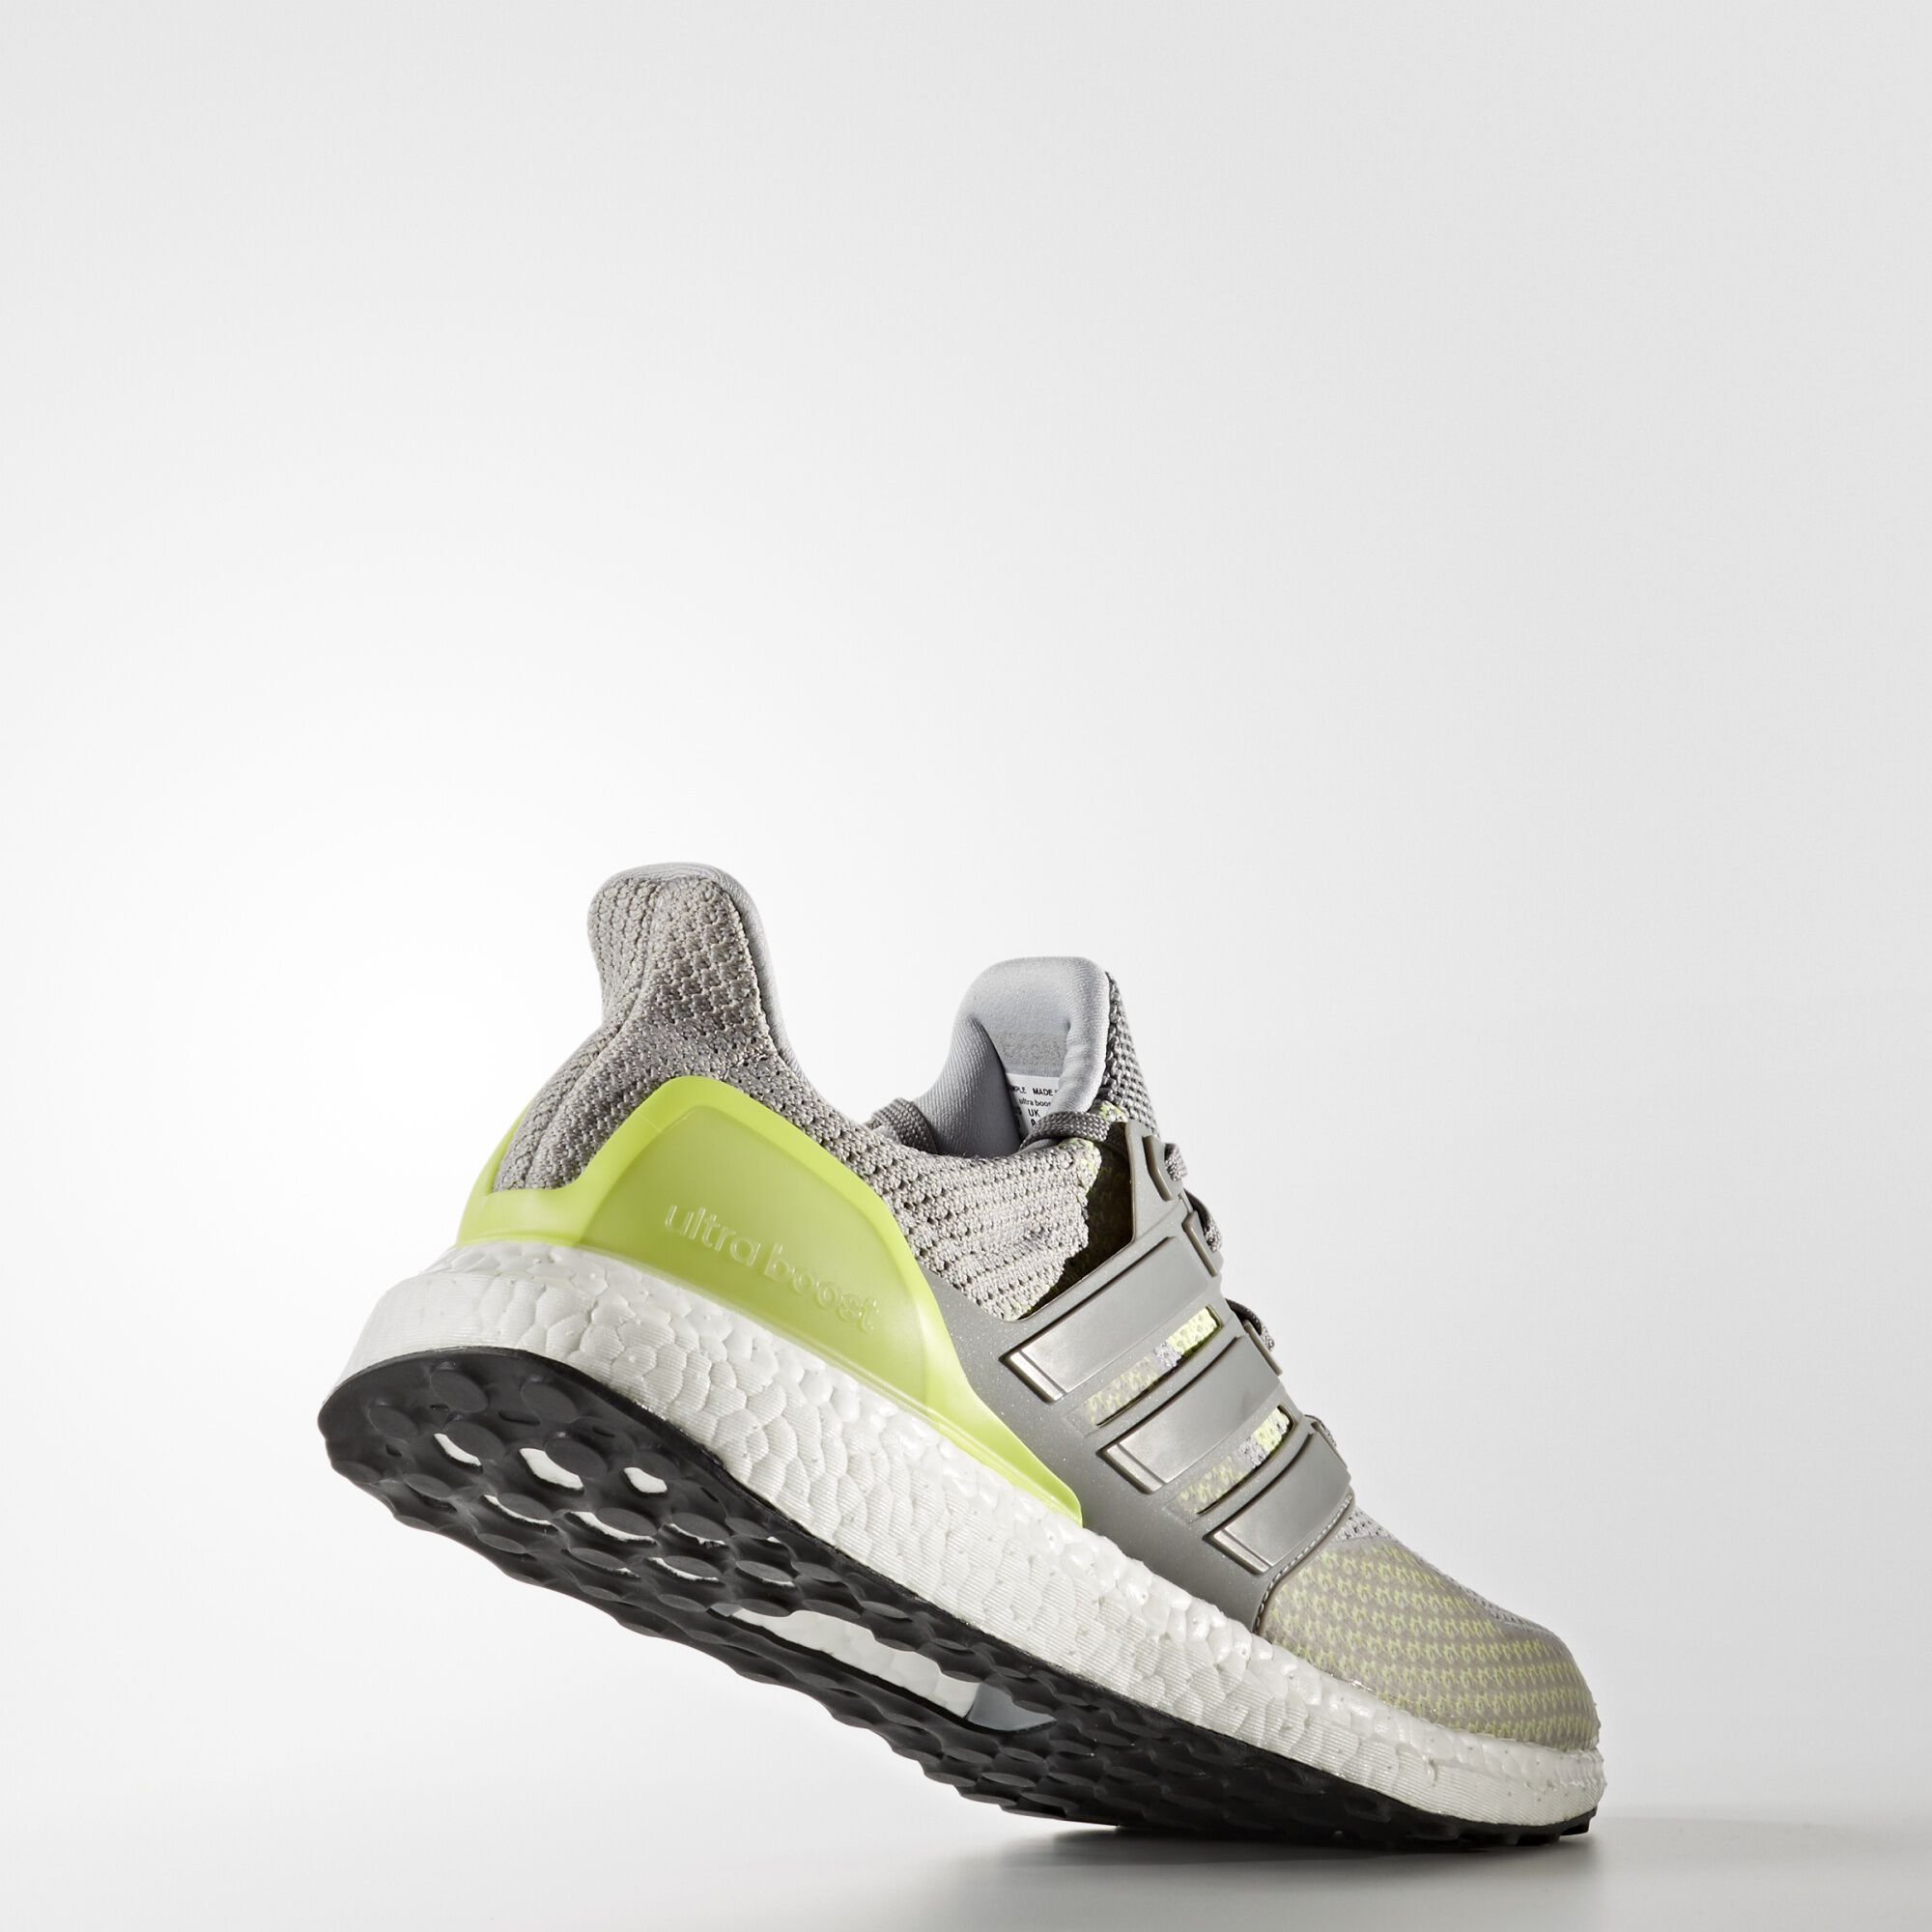 cf9ec41e04d85 adidas  Ultra Boost  Glow in the Dark  CW  N A SKU  BB4145 Release   09.28.16. Retail   180